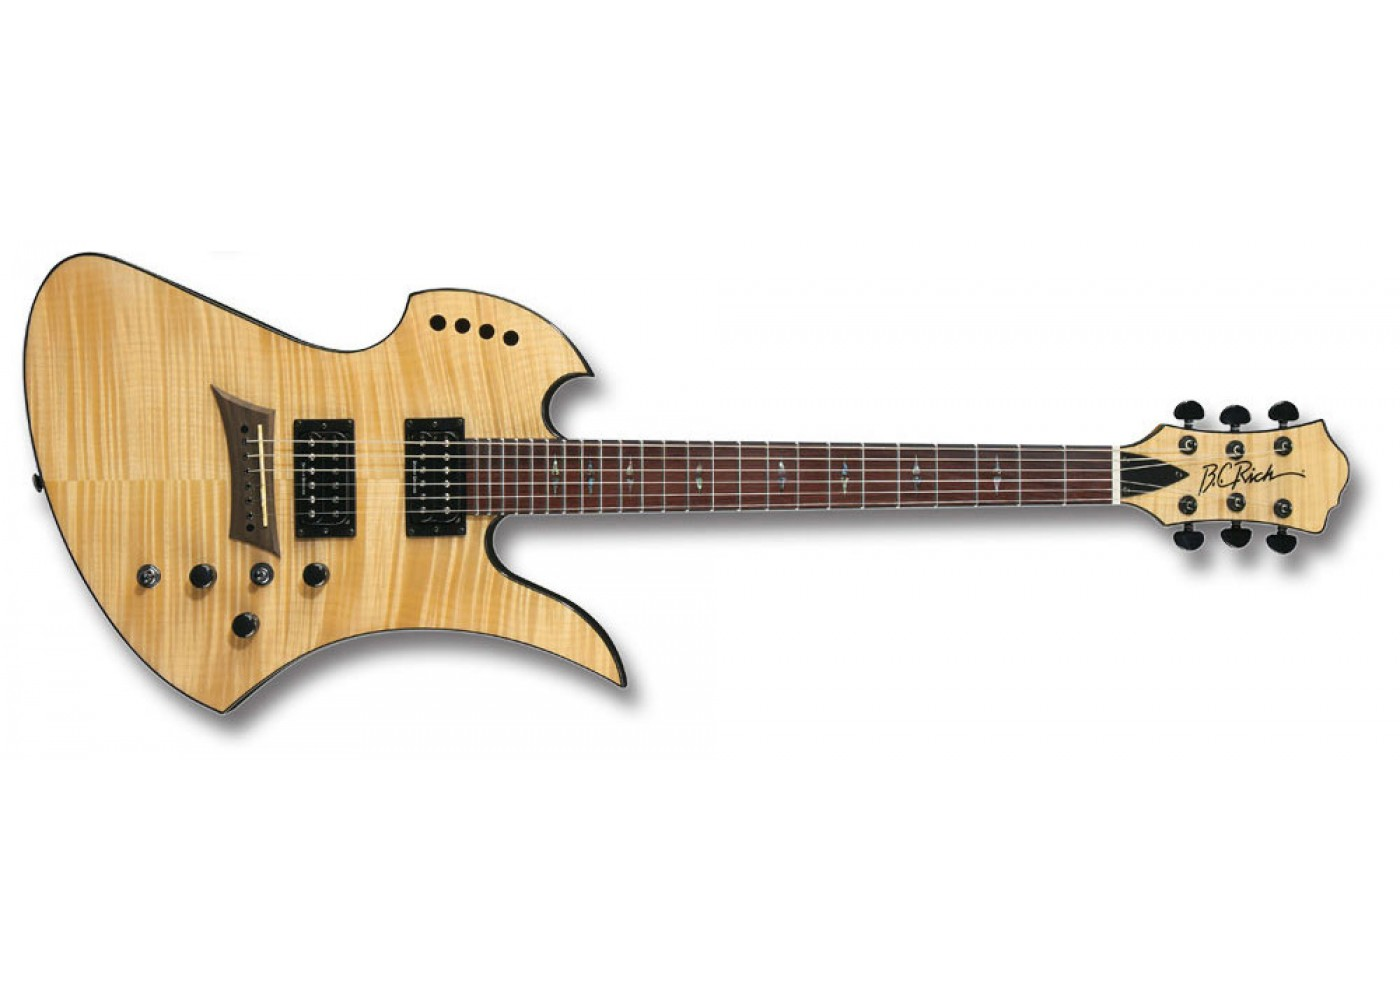 bc rich mgpoldlxn mockingbird polarity deluxe electric guitar gloss natural with duncan designed. Black Bedroom Furniture Sets. Home Design Ideas